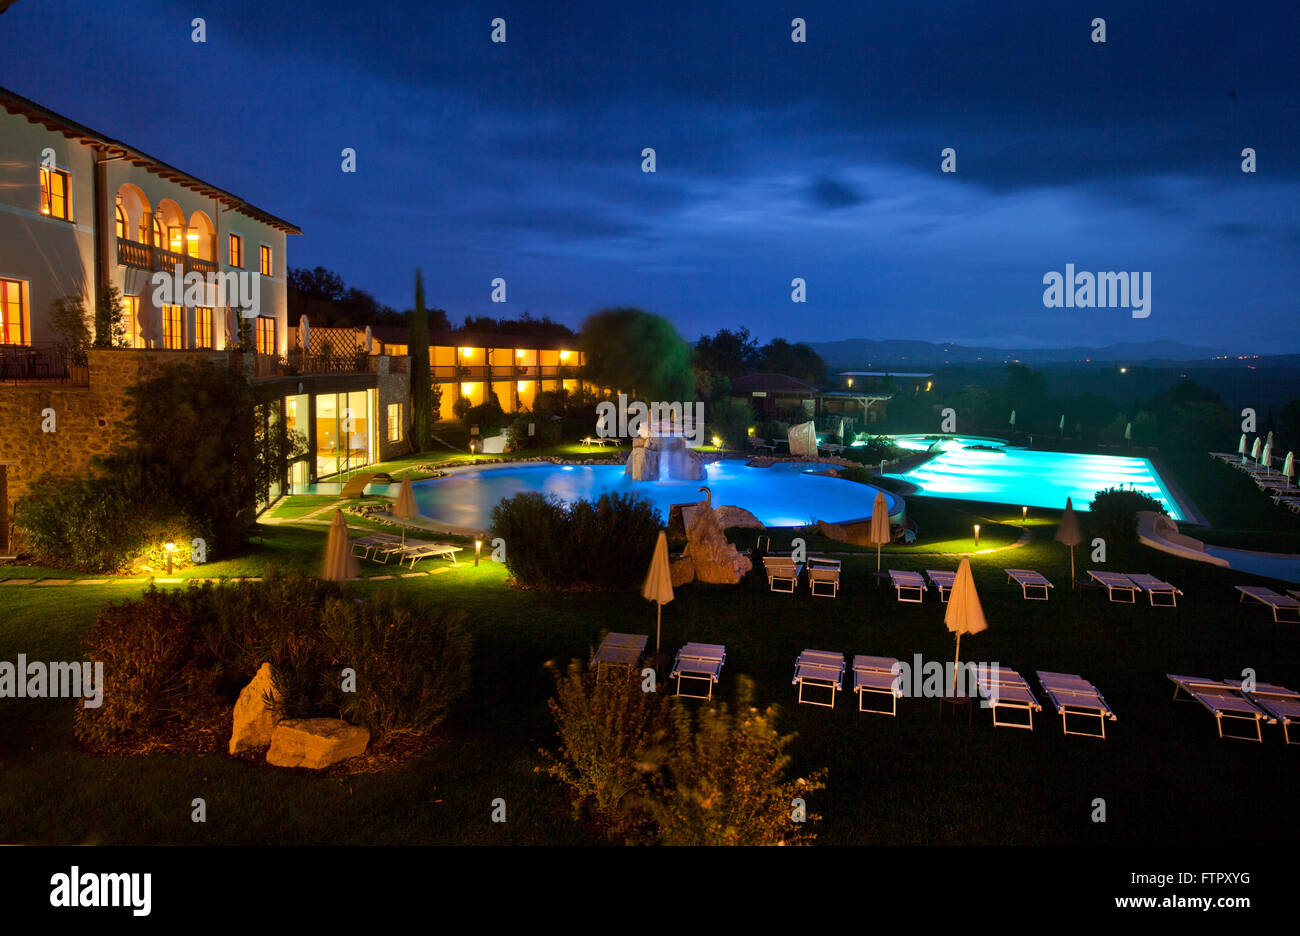 Thermae Stock Photos & Thermae Stock Images - Alamy